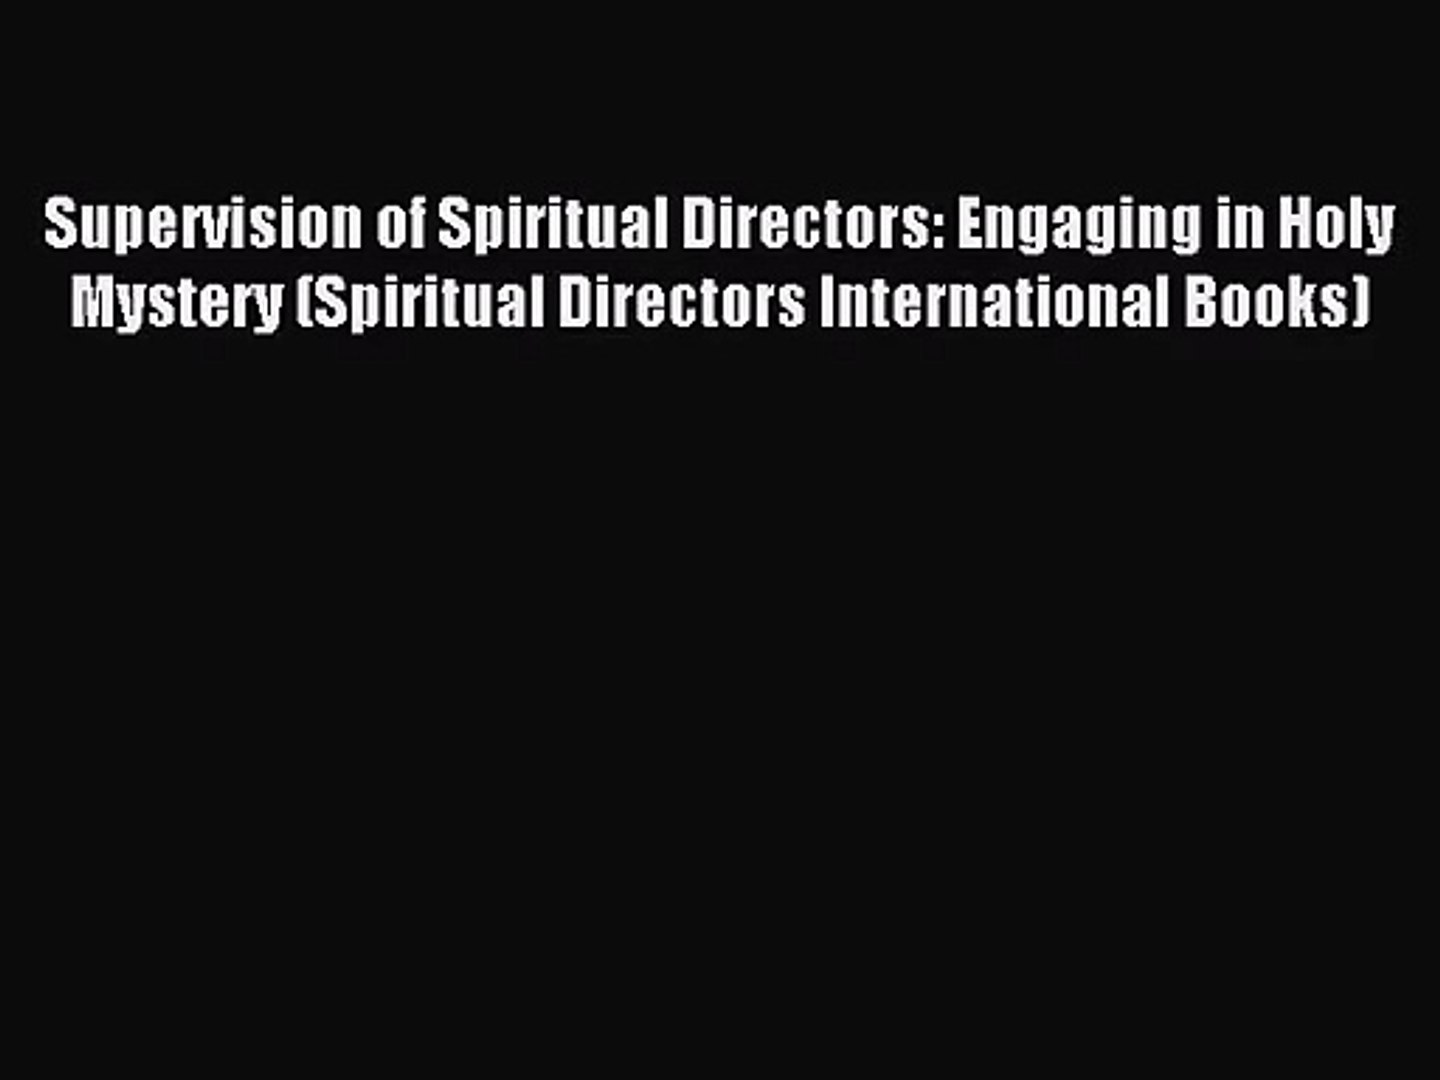 Supervision of Spiritual Directors: Engaging in Holy Mystery (Spiritual Directors International